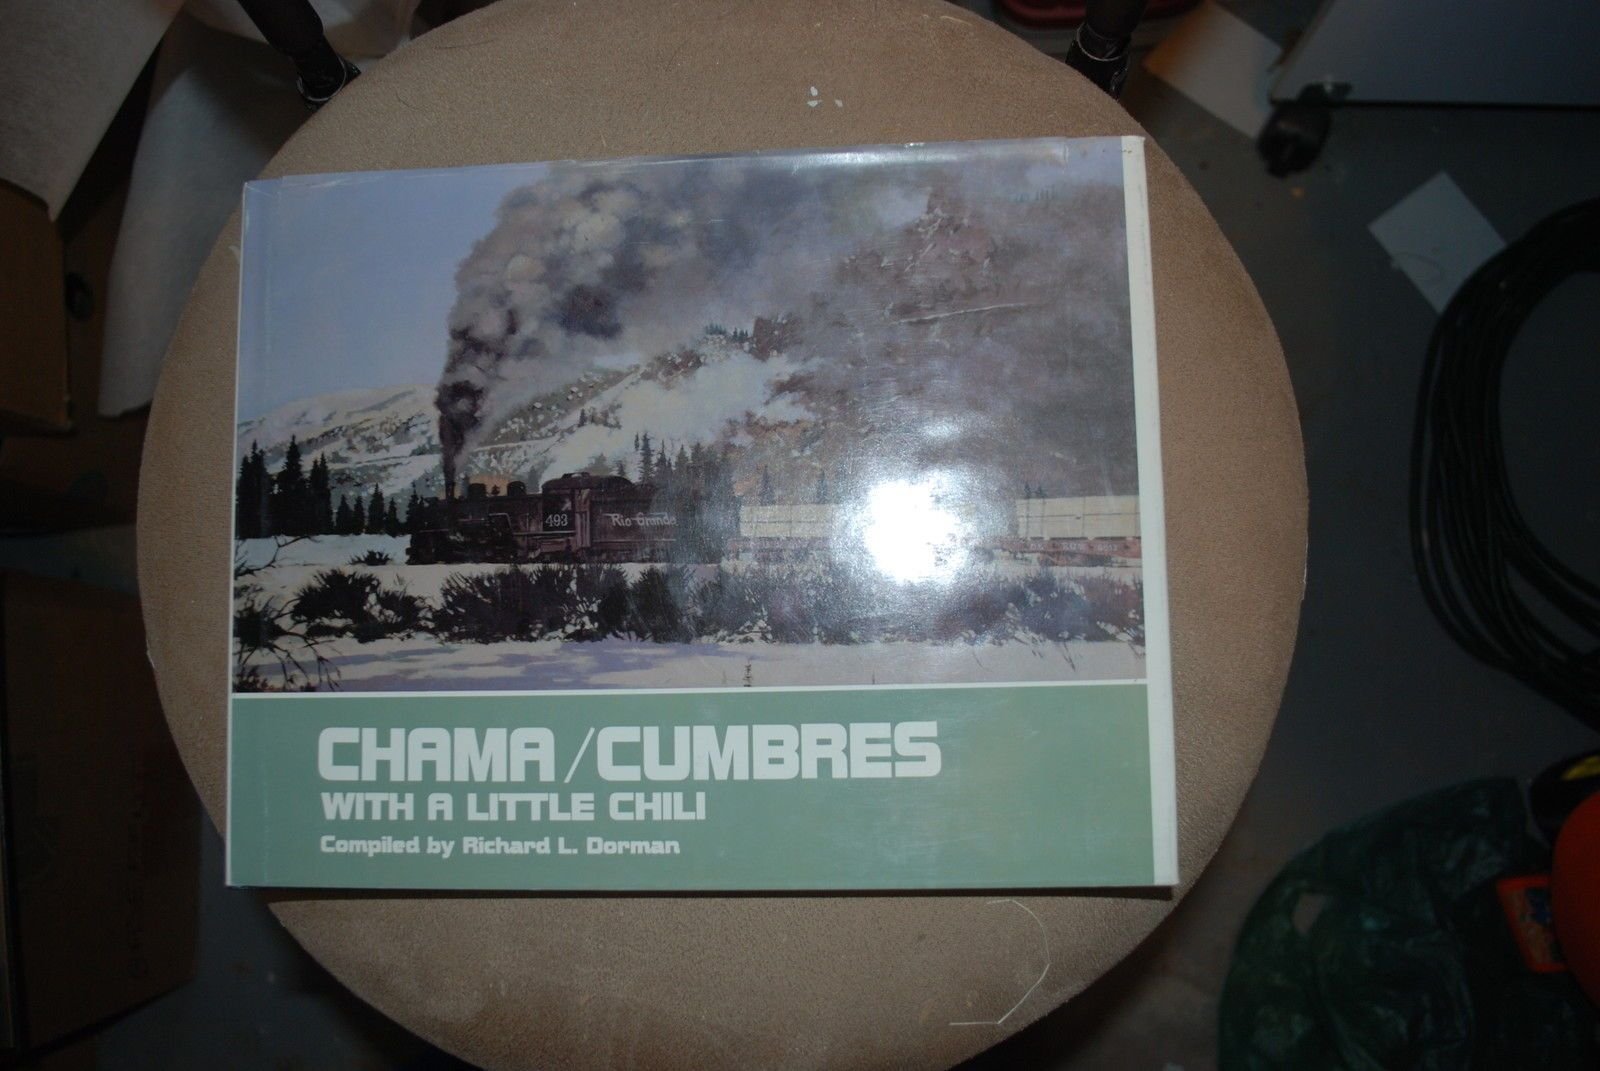 Chama/cumbres With A Little Chili By Richard L. Dorman